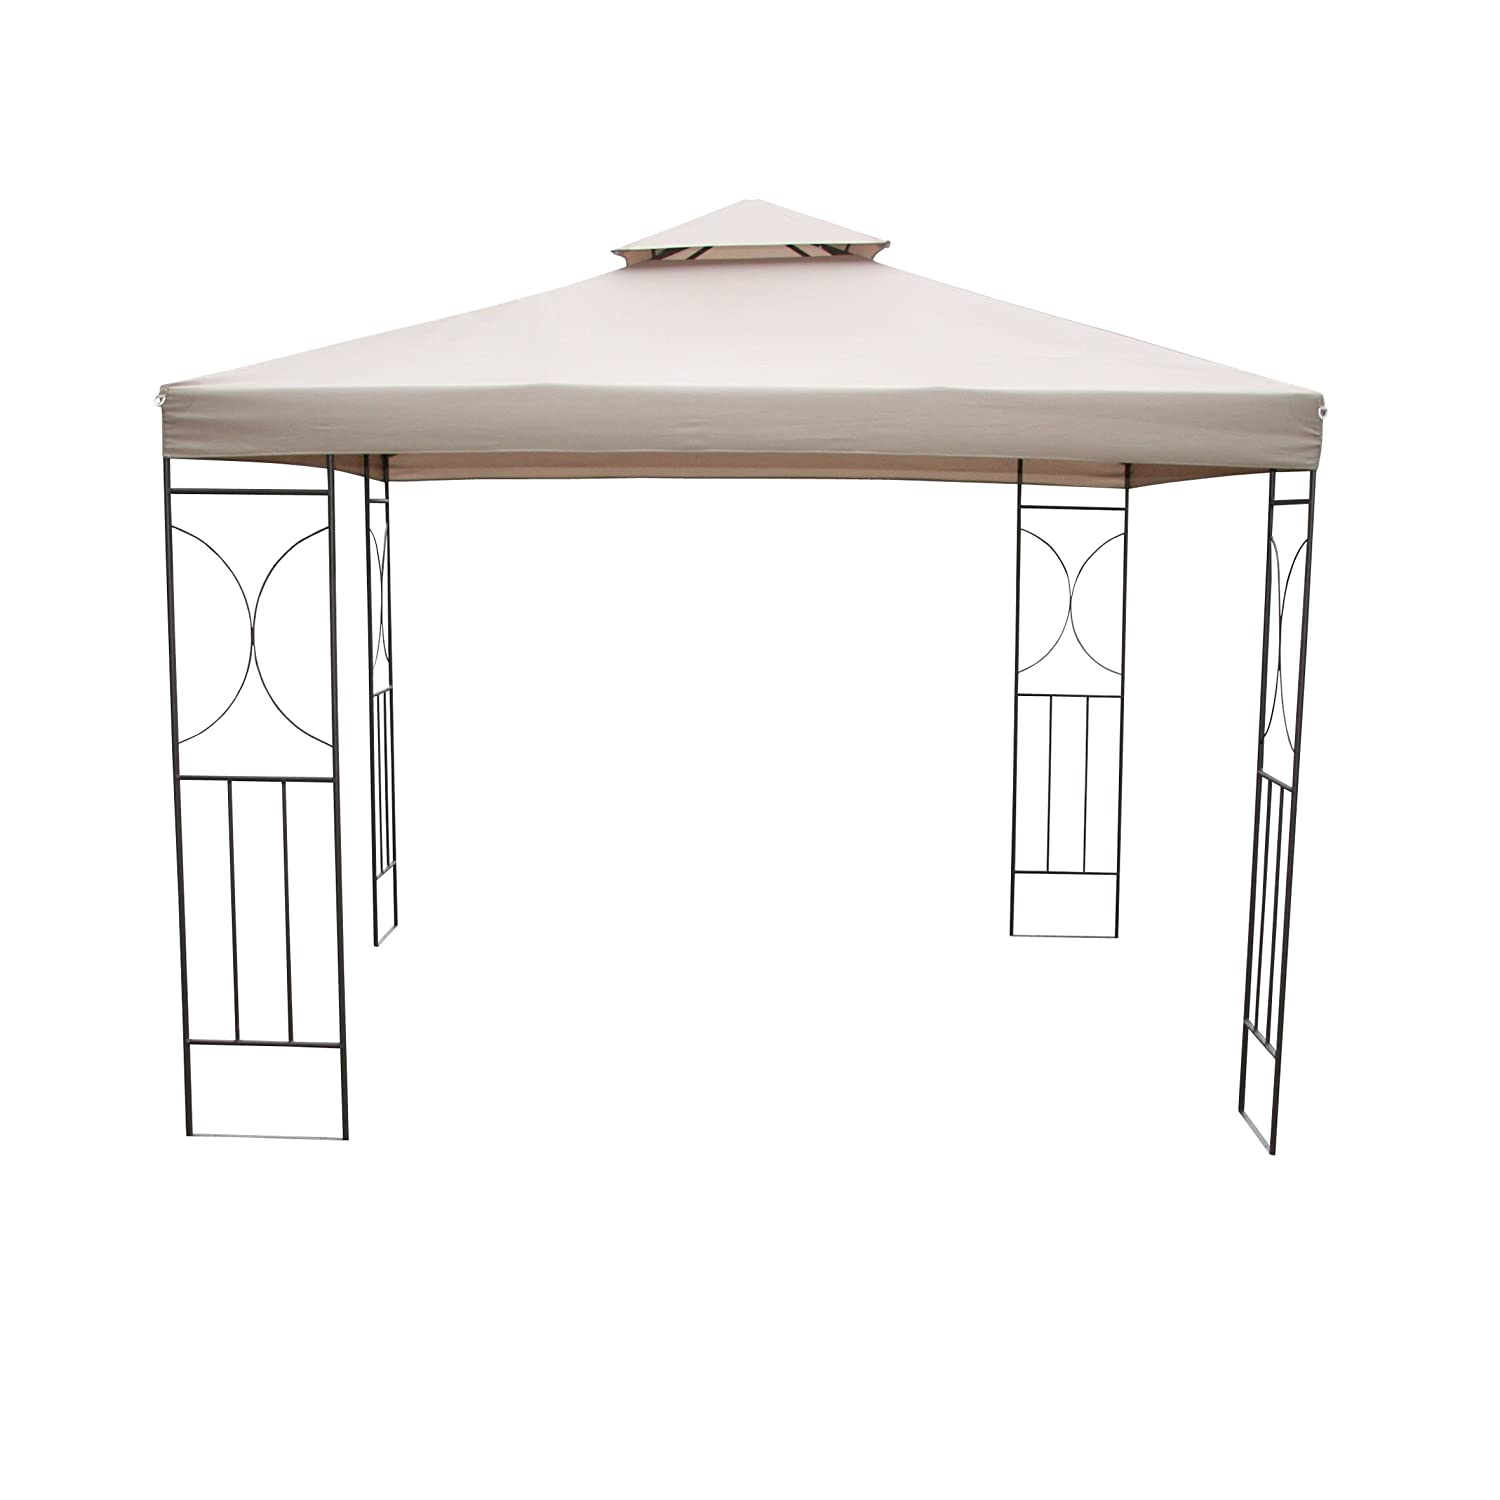 Greemotion 438550 Pavillon Jubilee 300 x 300 cm, sand